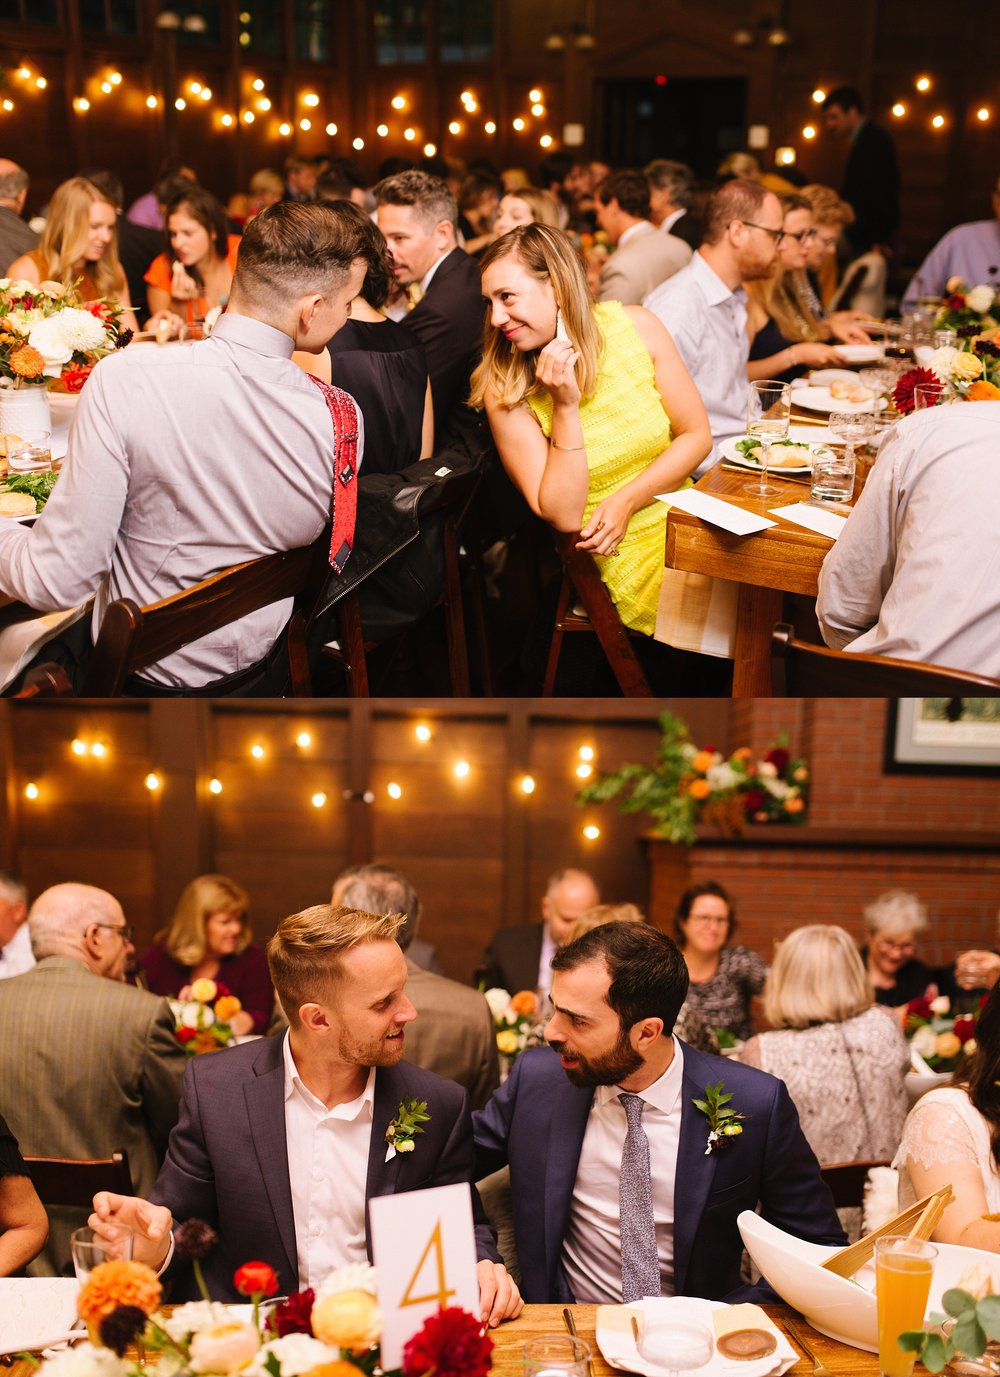 noahhannah_redwoods_botanical_wedding_berkeley_cdp_0037.jpg